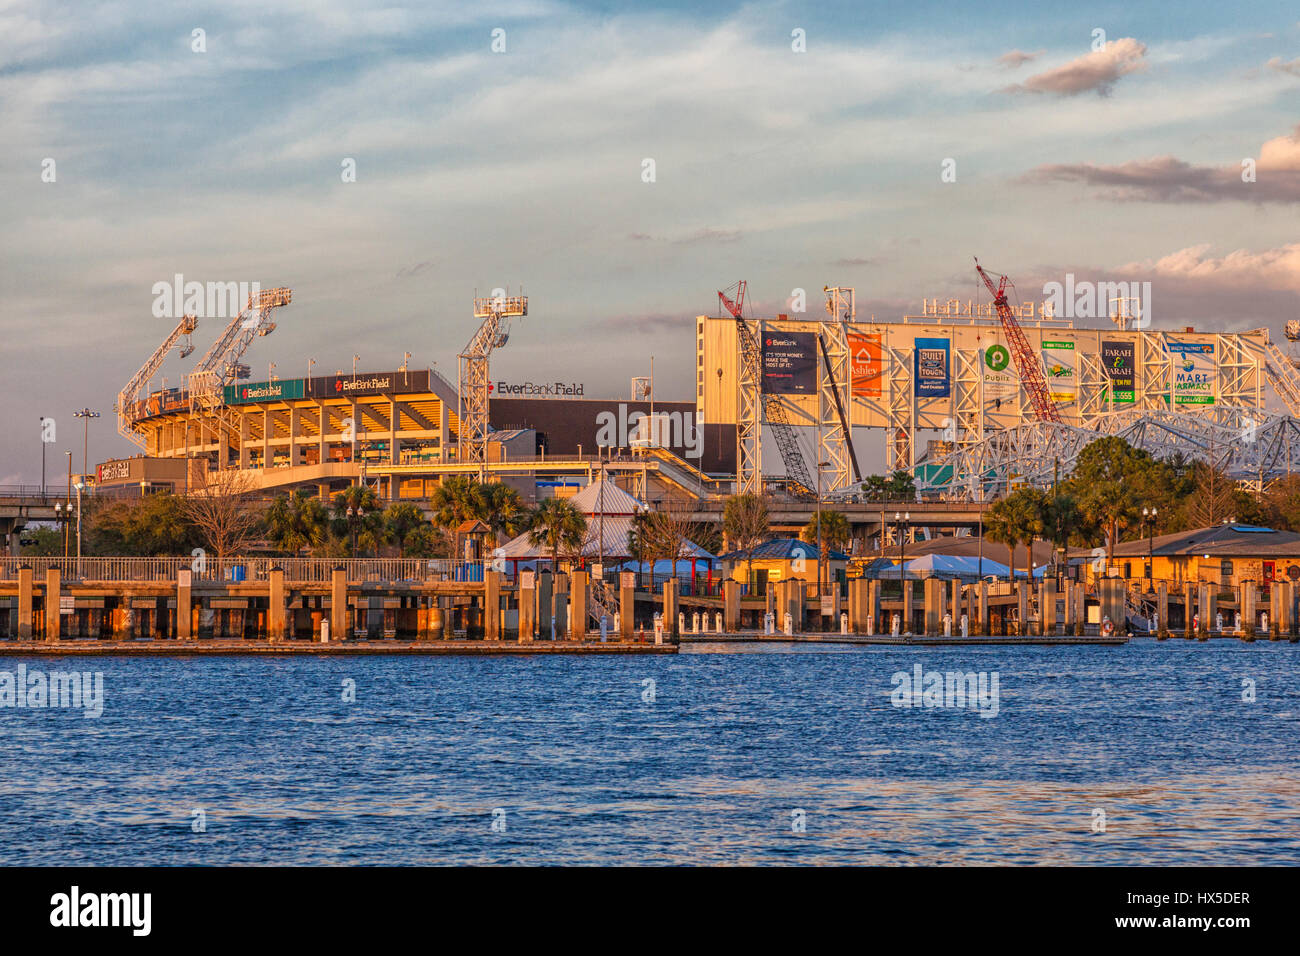 Sunset on Everbank Field stadium (NFL team Jaguars) on St Johns River in downtown Jacksonville, Florida. Recently - Stock Image